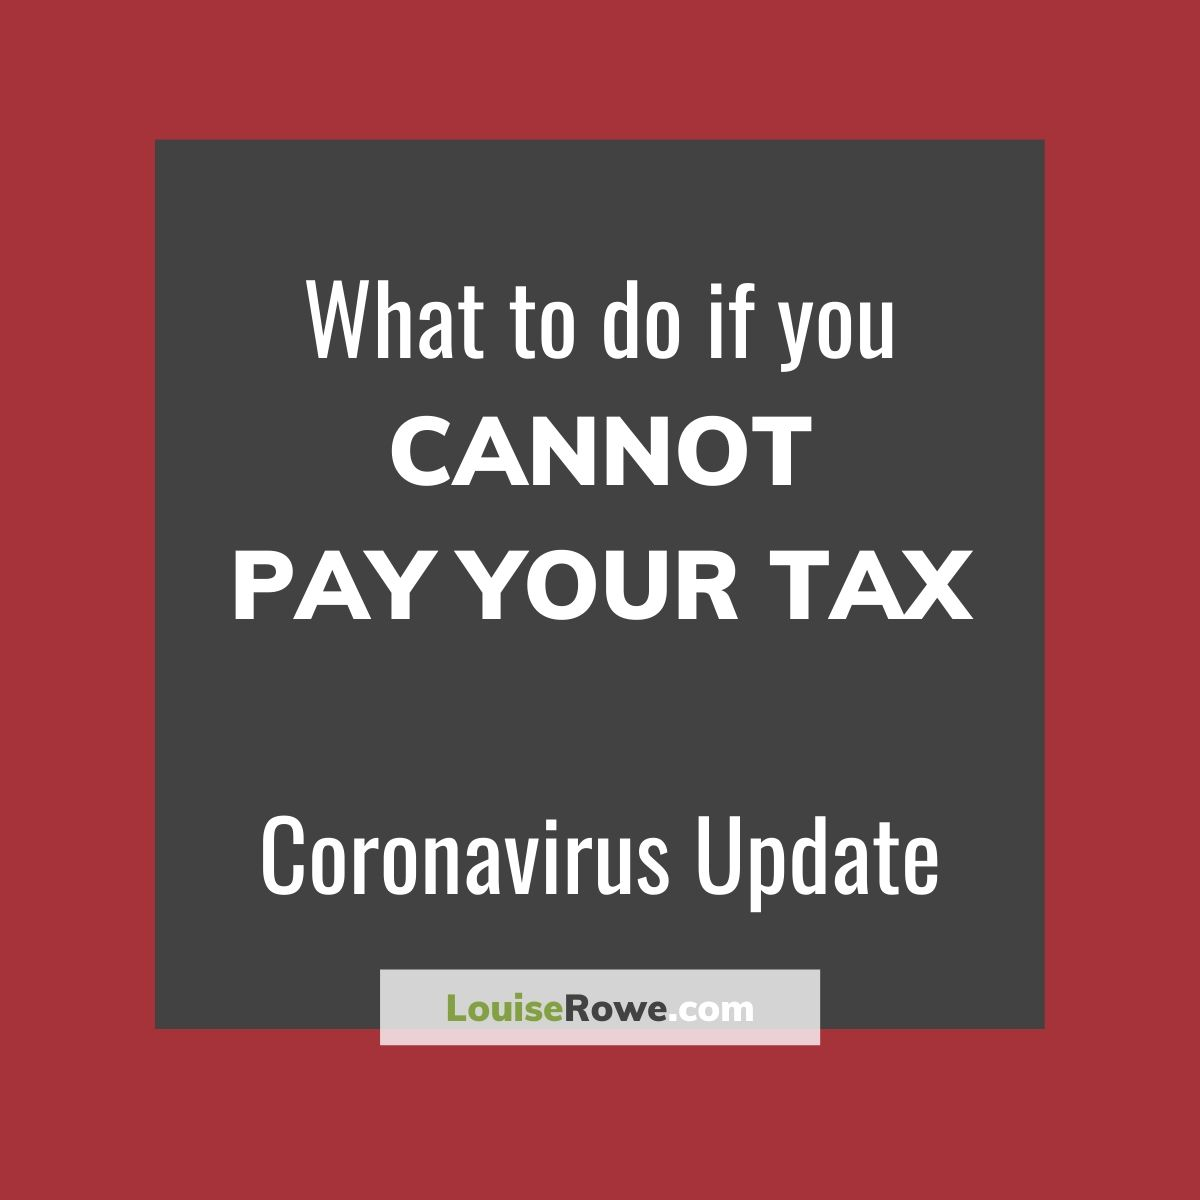 What to do if you cannot pay your tax Coronavirus (pin). Photo credit © L Rowe 2020